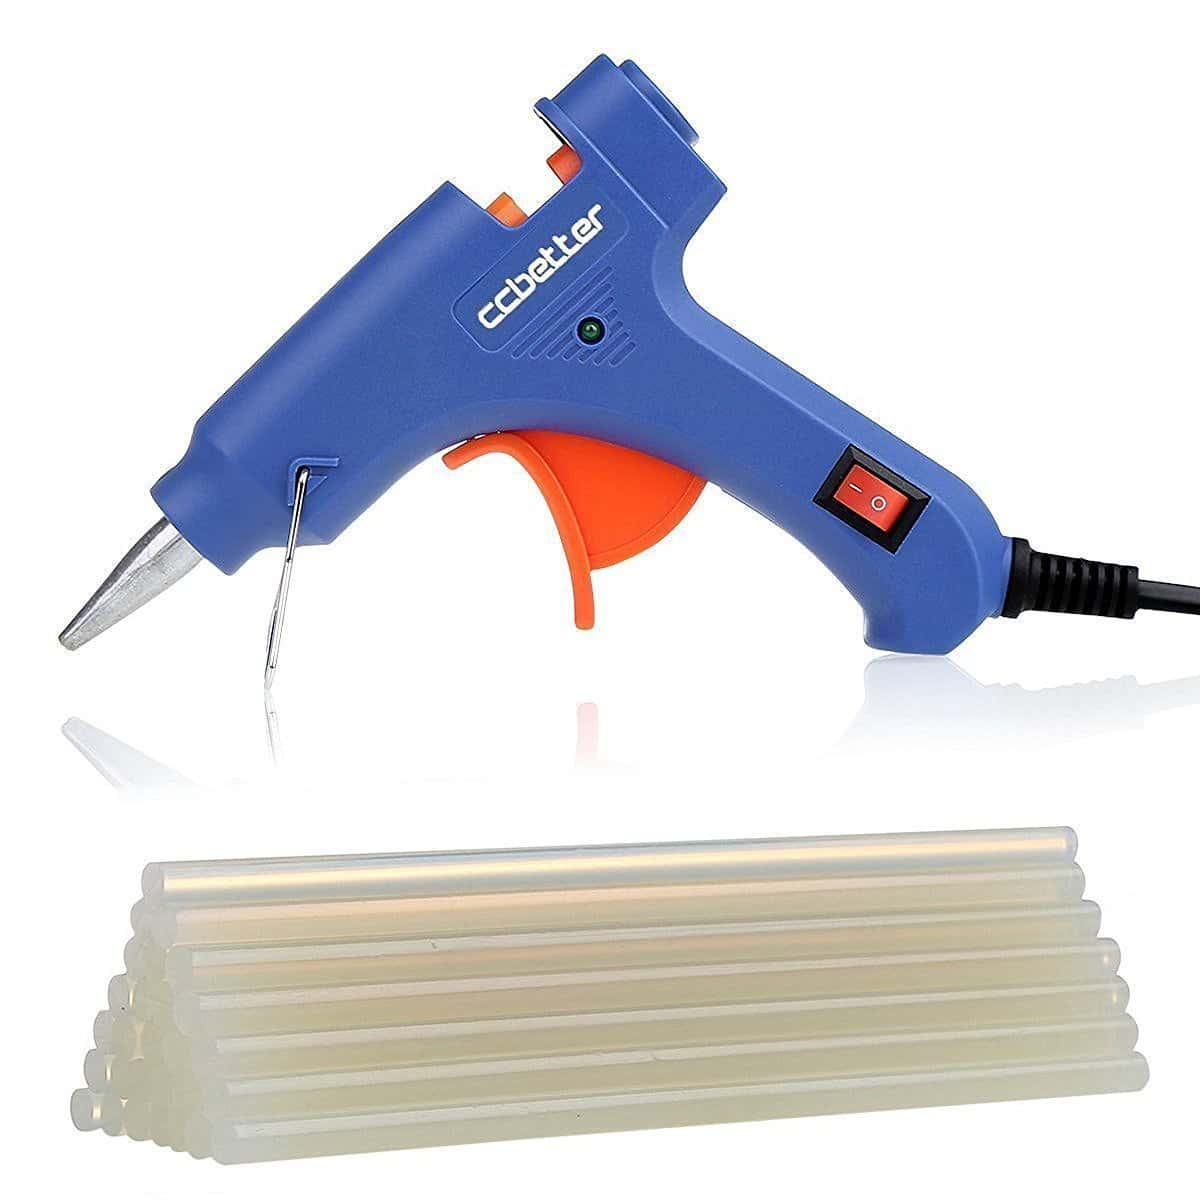 CCbetter Mini Hot Melt Glue Gun with 25pcs Glue Sticks High Temperature Melting Glue Gun Kit